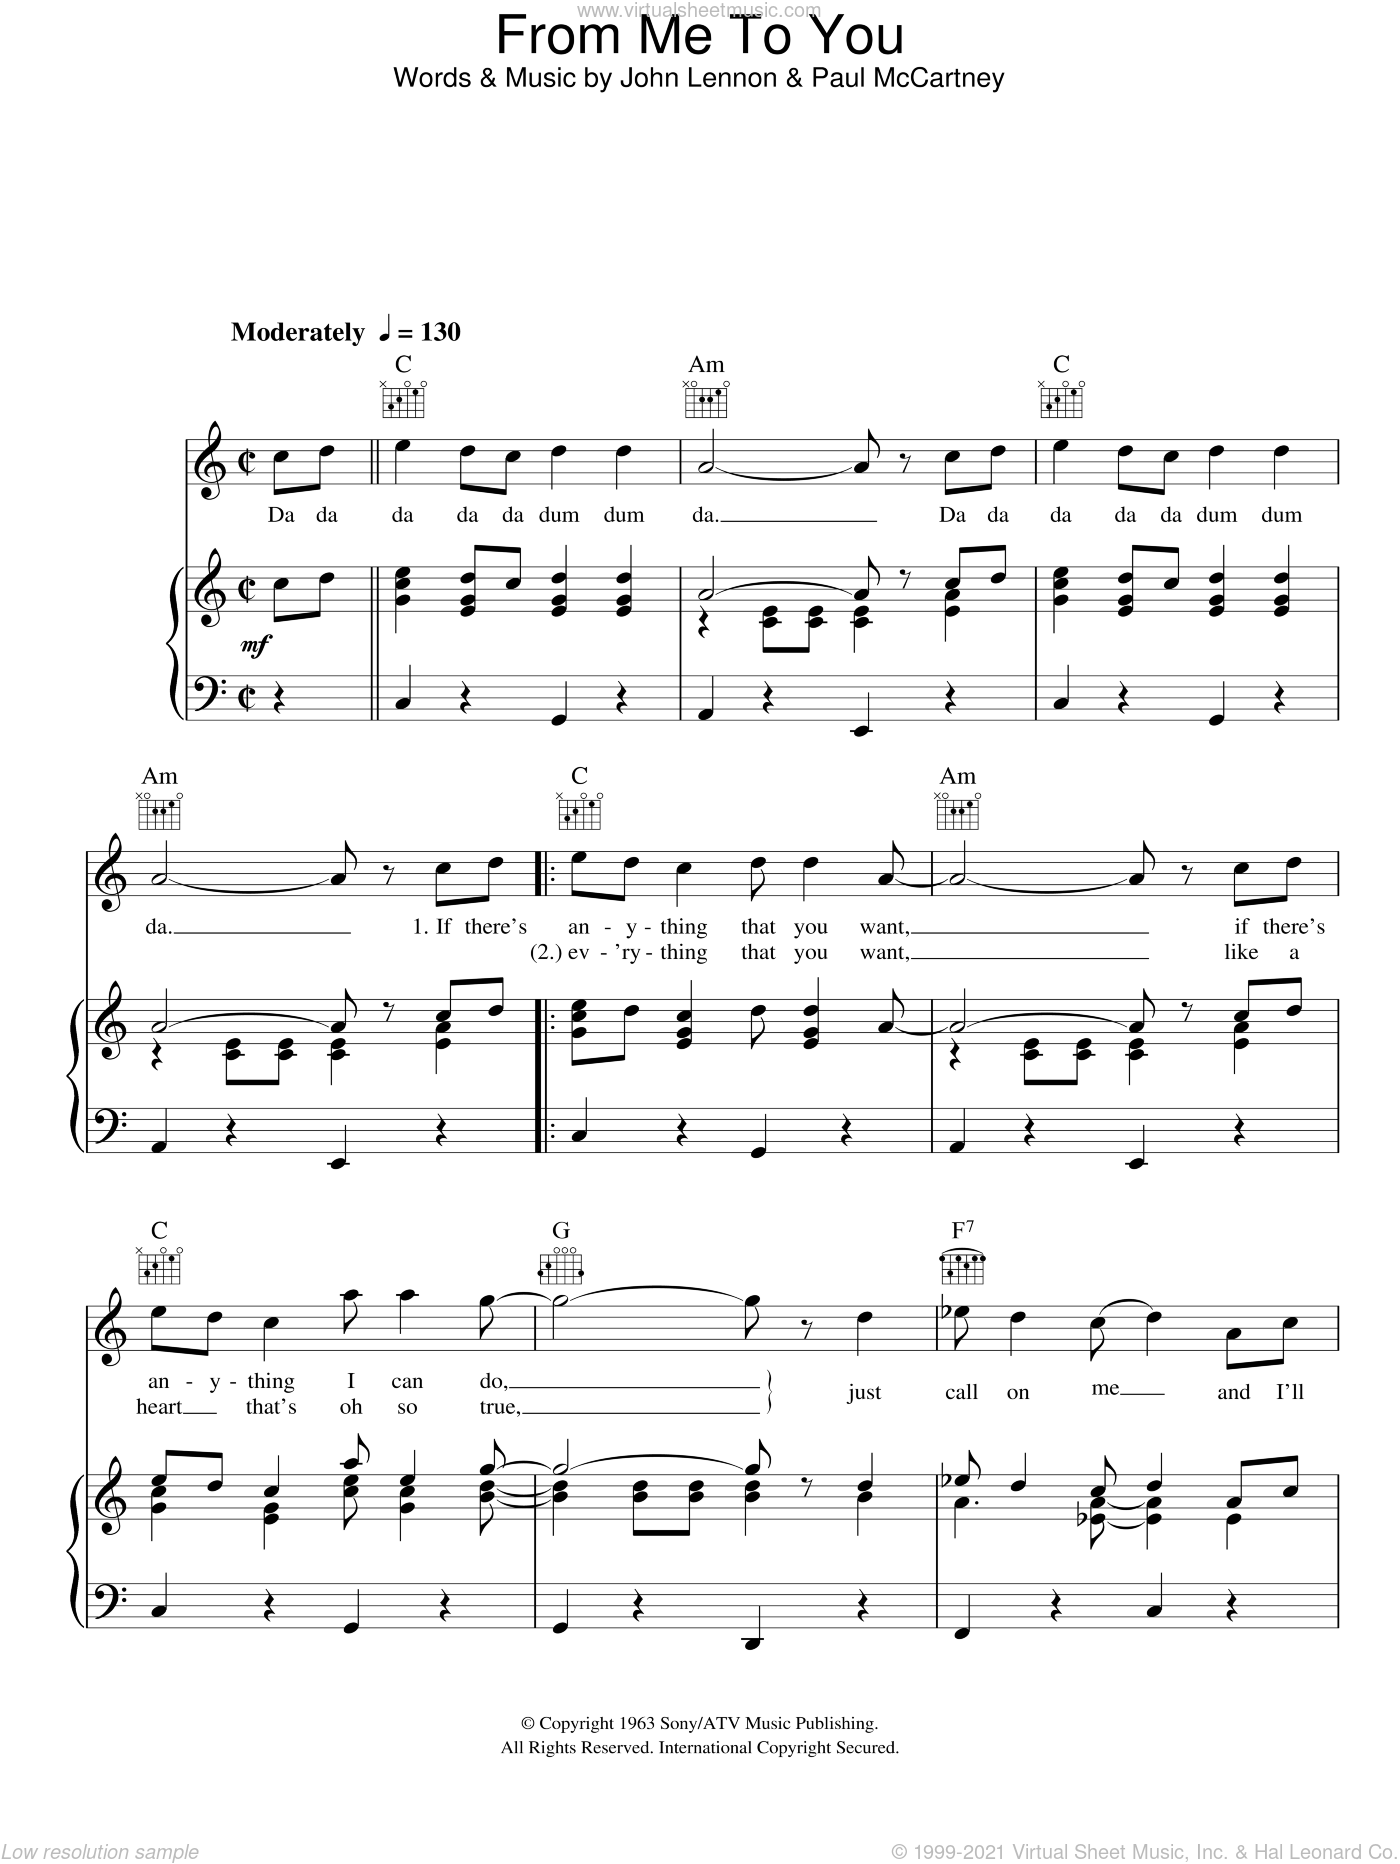 From Me To You sheet music for voice, piano or guitar by The Beatles, intermediate voice, piano or guitar. Score Image Preview.